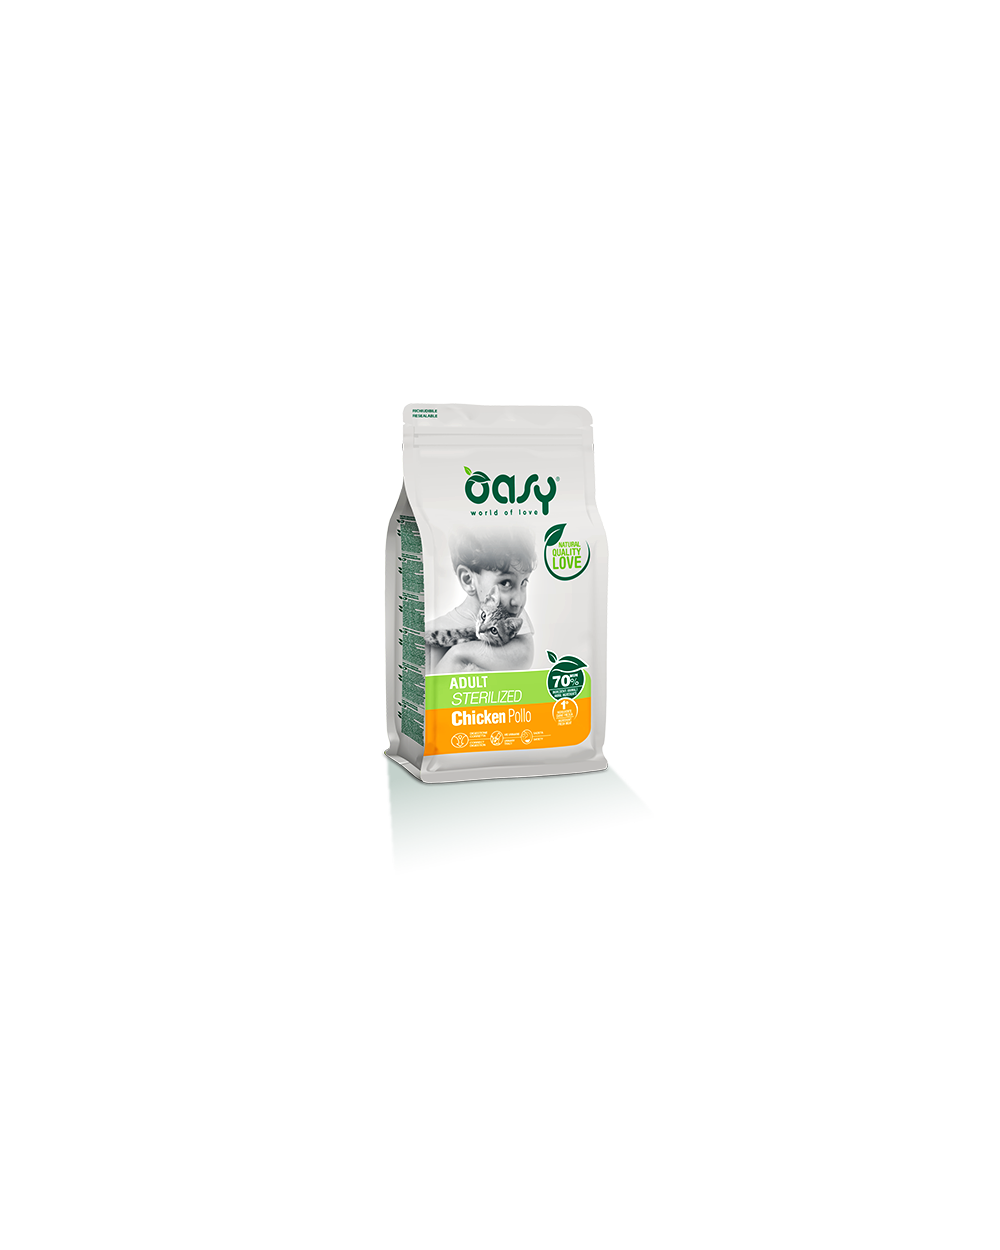 Oasy Adult Sterilized